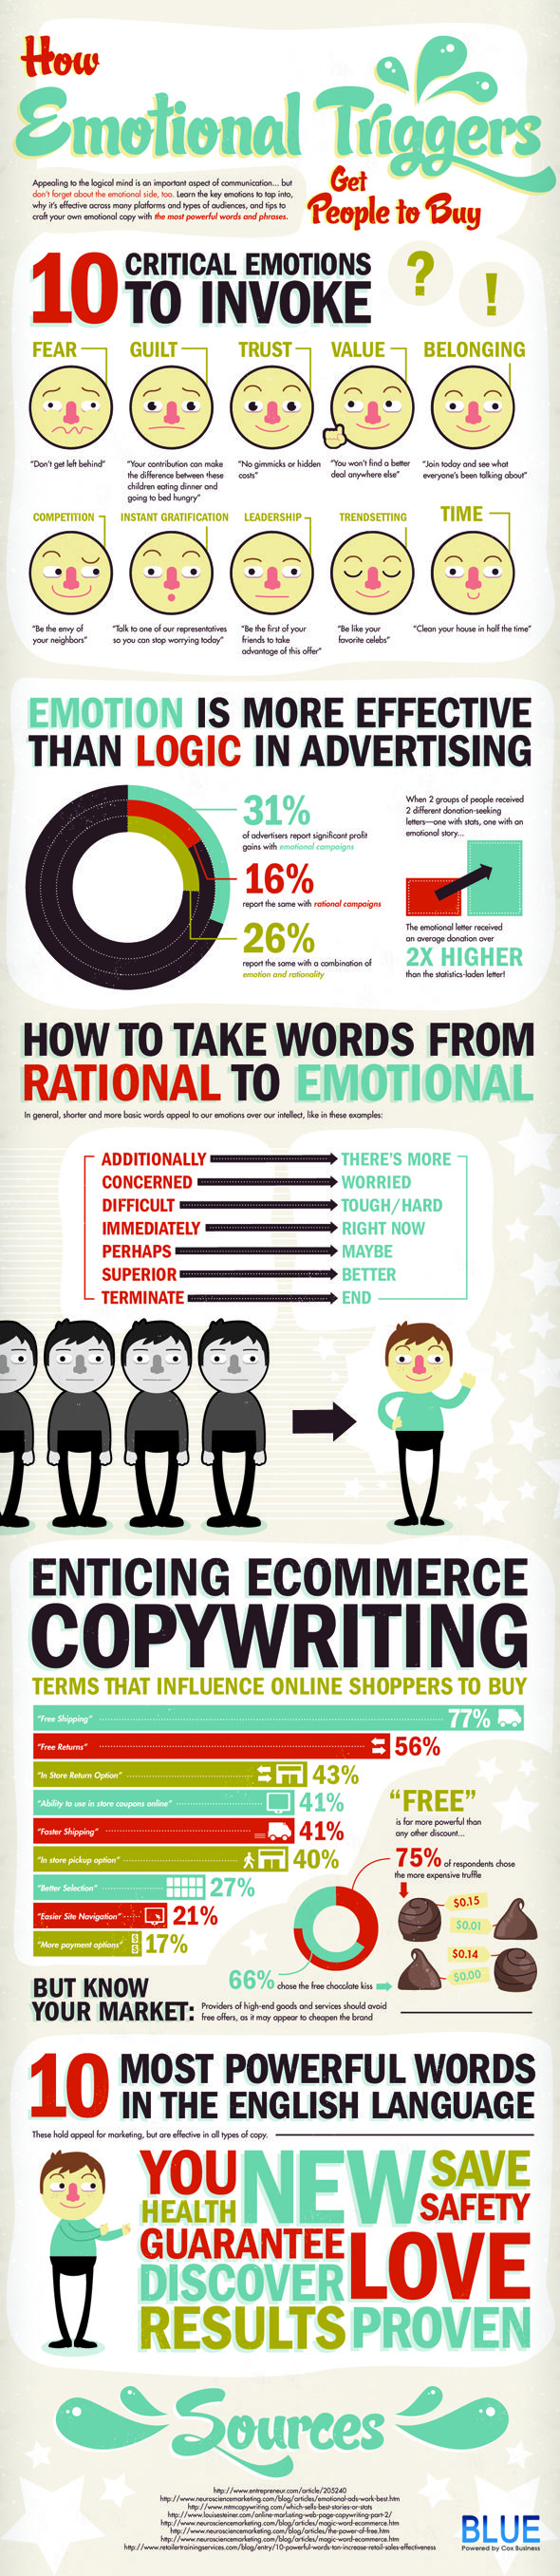 How Emotional Triggers Get People to Buy?